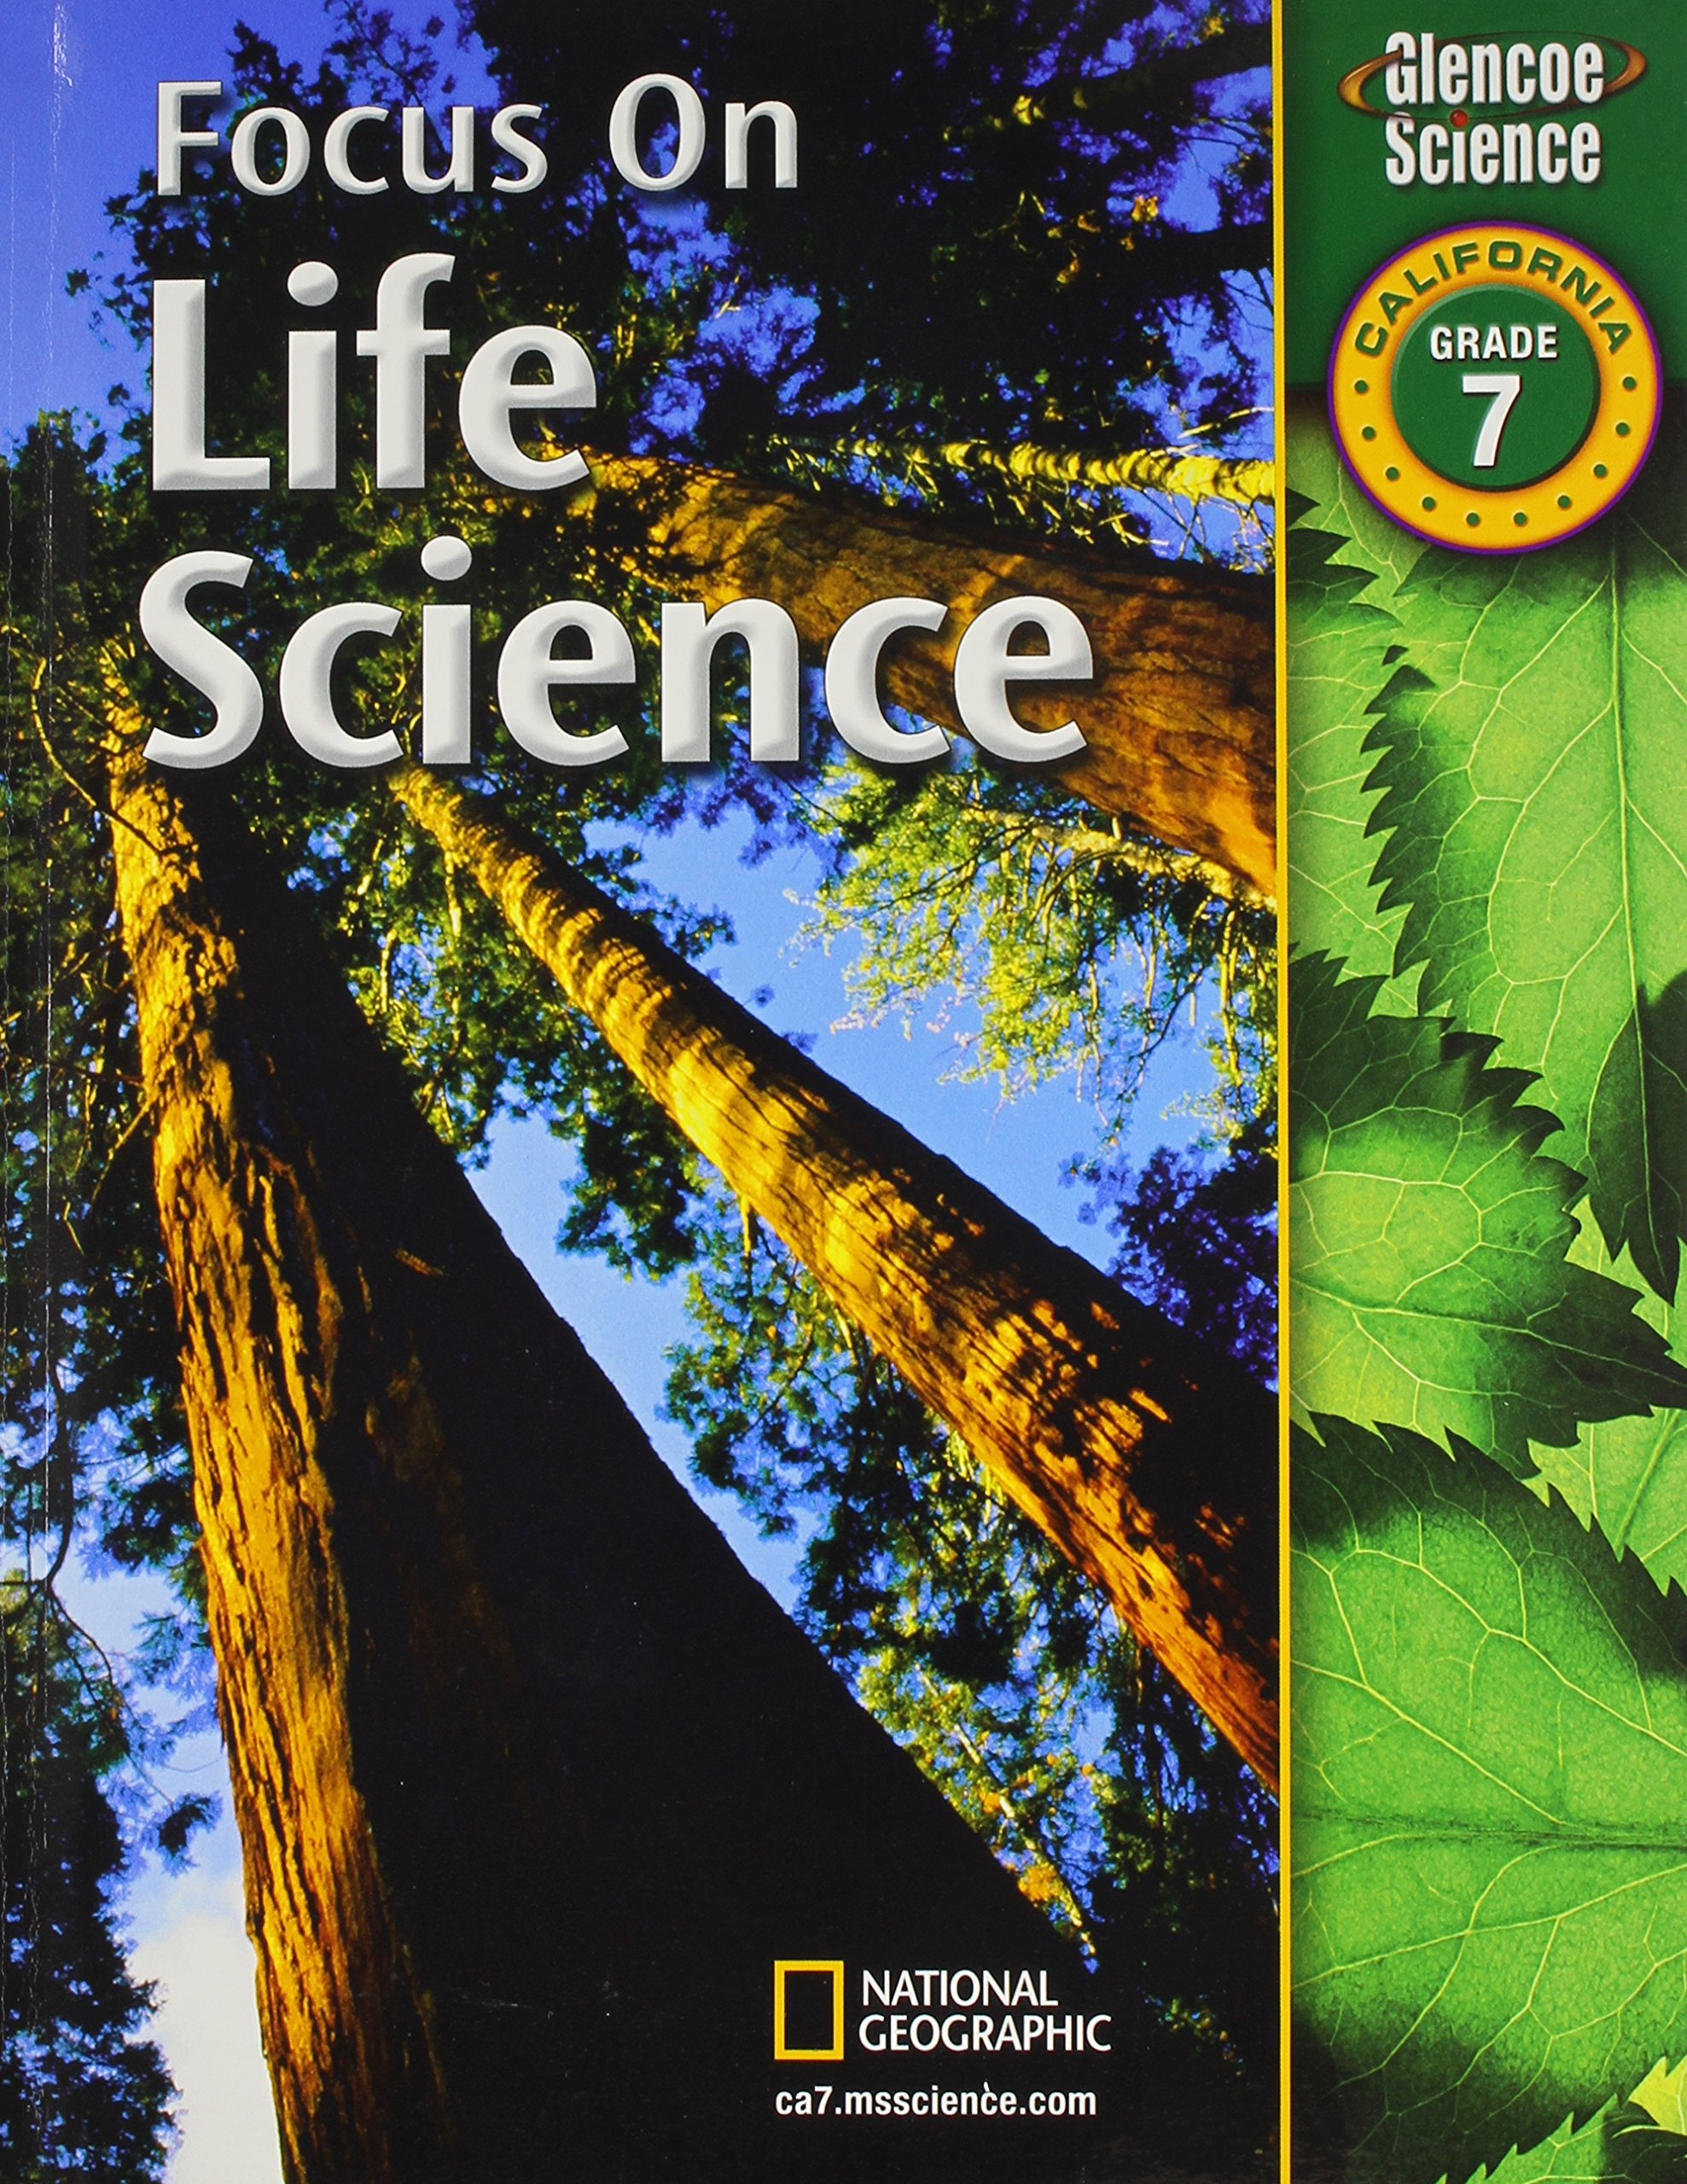 Worksheets Glencoe Life Science Worksheets focus on life science california grade 7 phd juli berwald 9780078794346 amazon com books